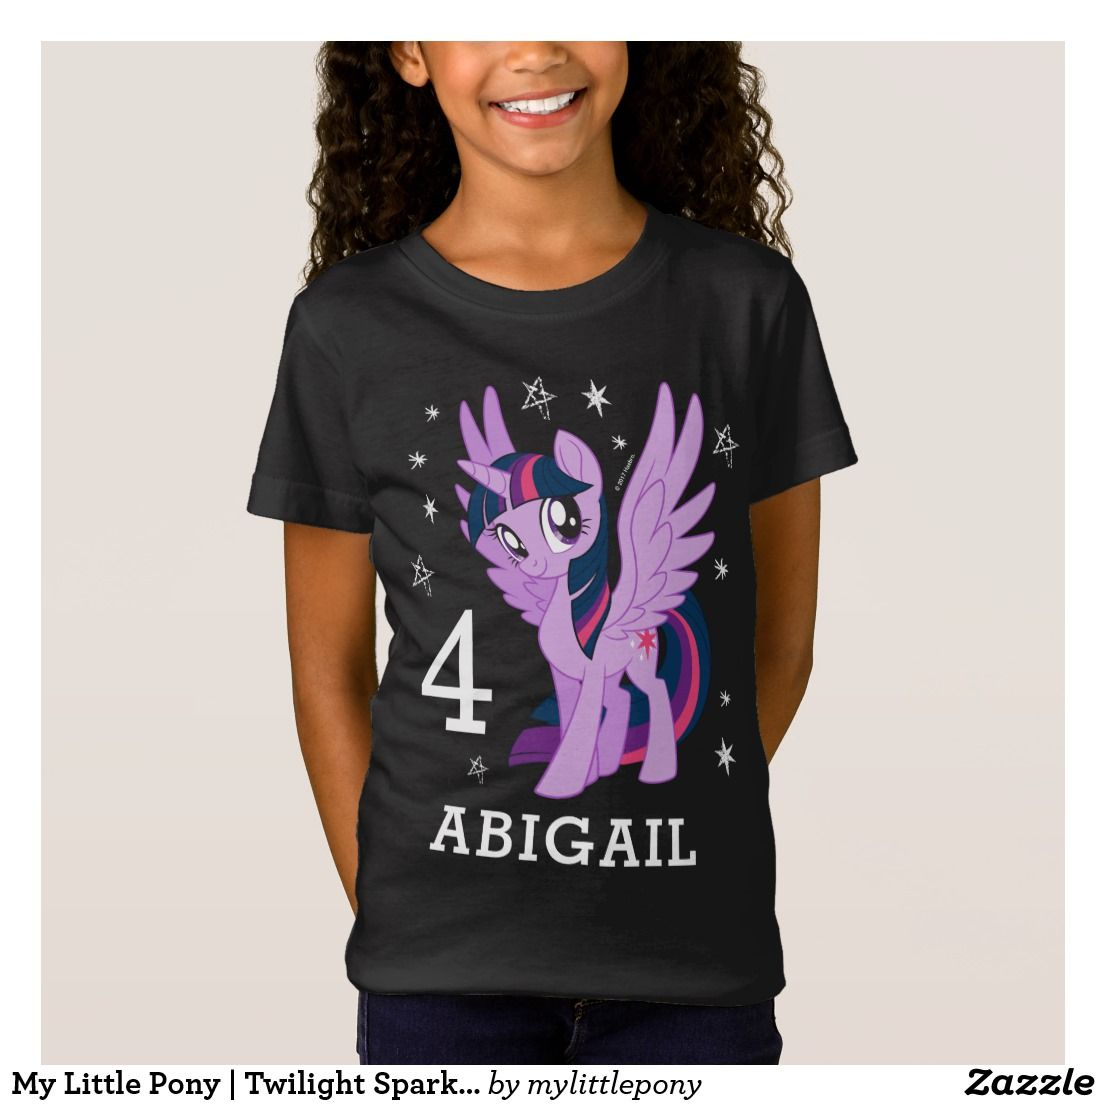 My Little Pony Personalised Children/'s T-Shirt Kids tshirt Including Name